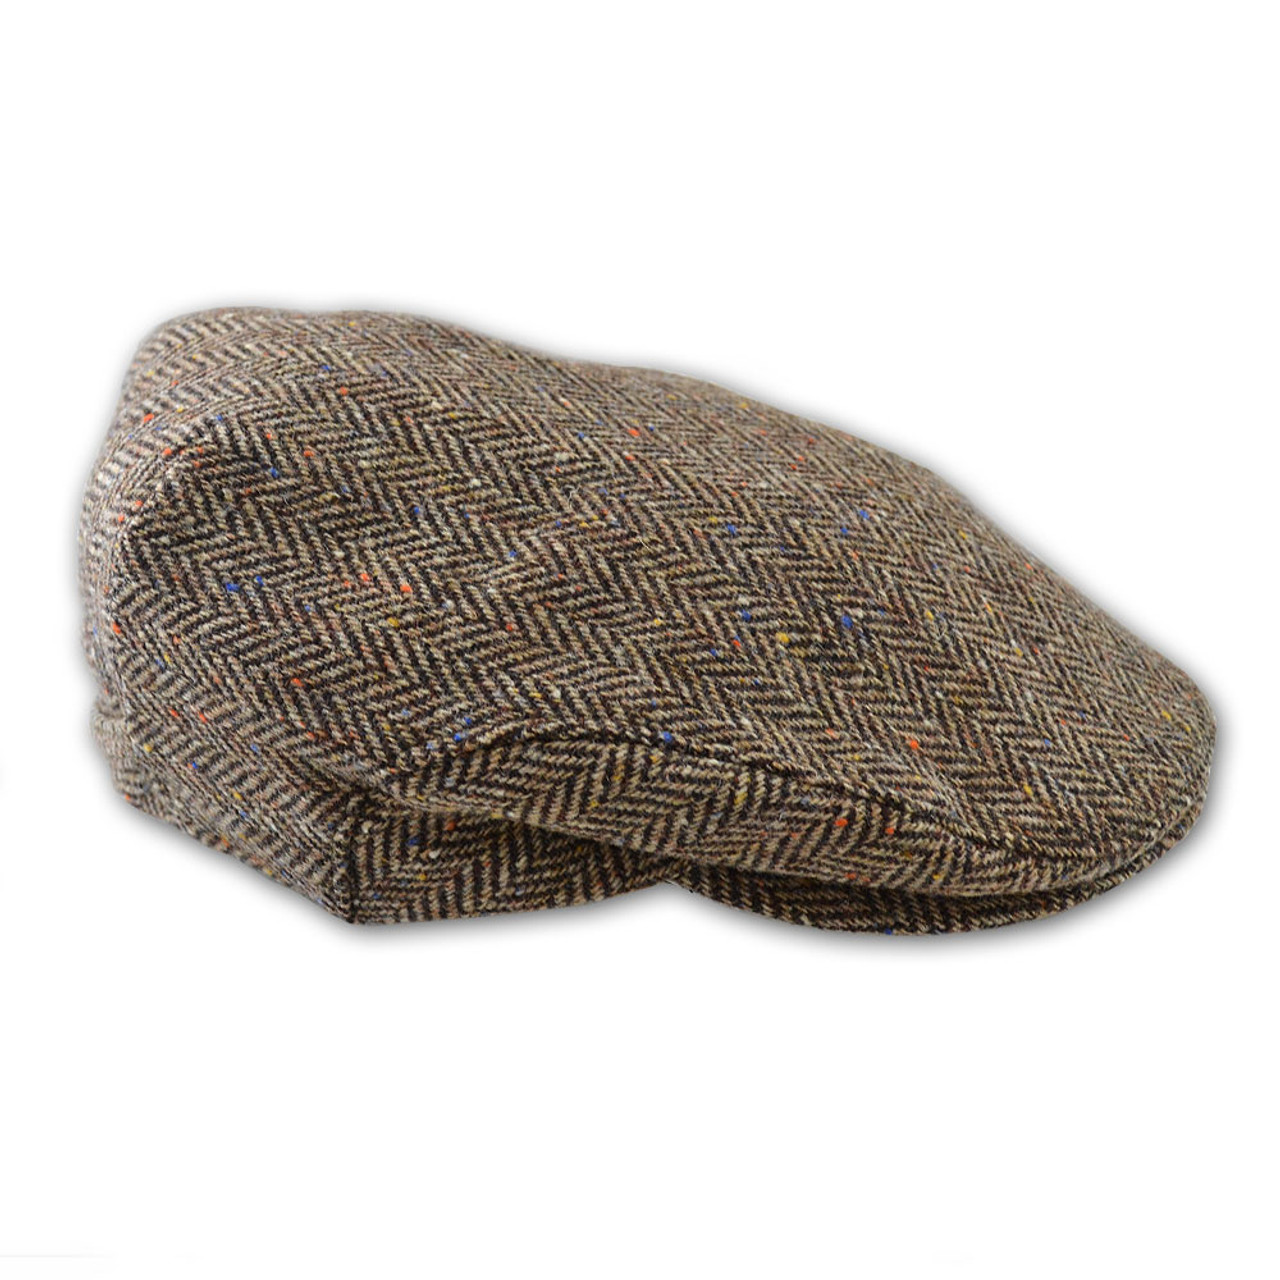 Irish-Made Trinity Cap for Men